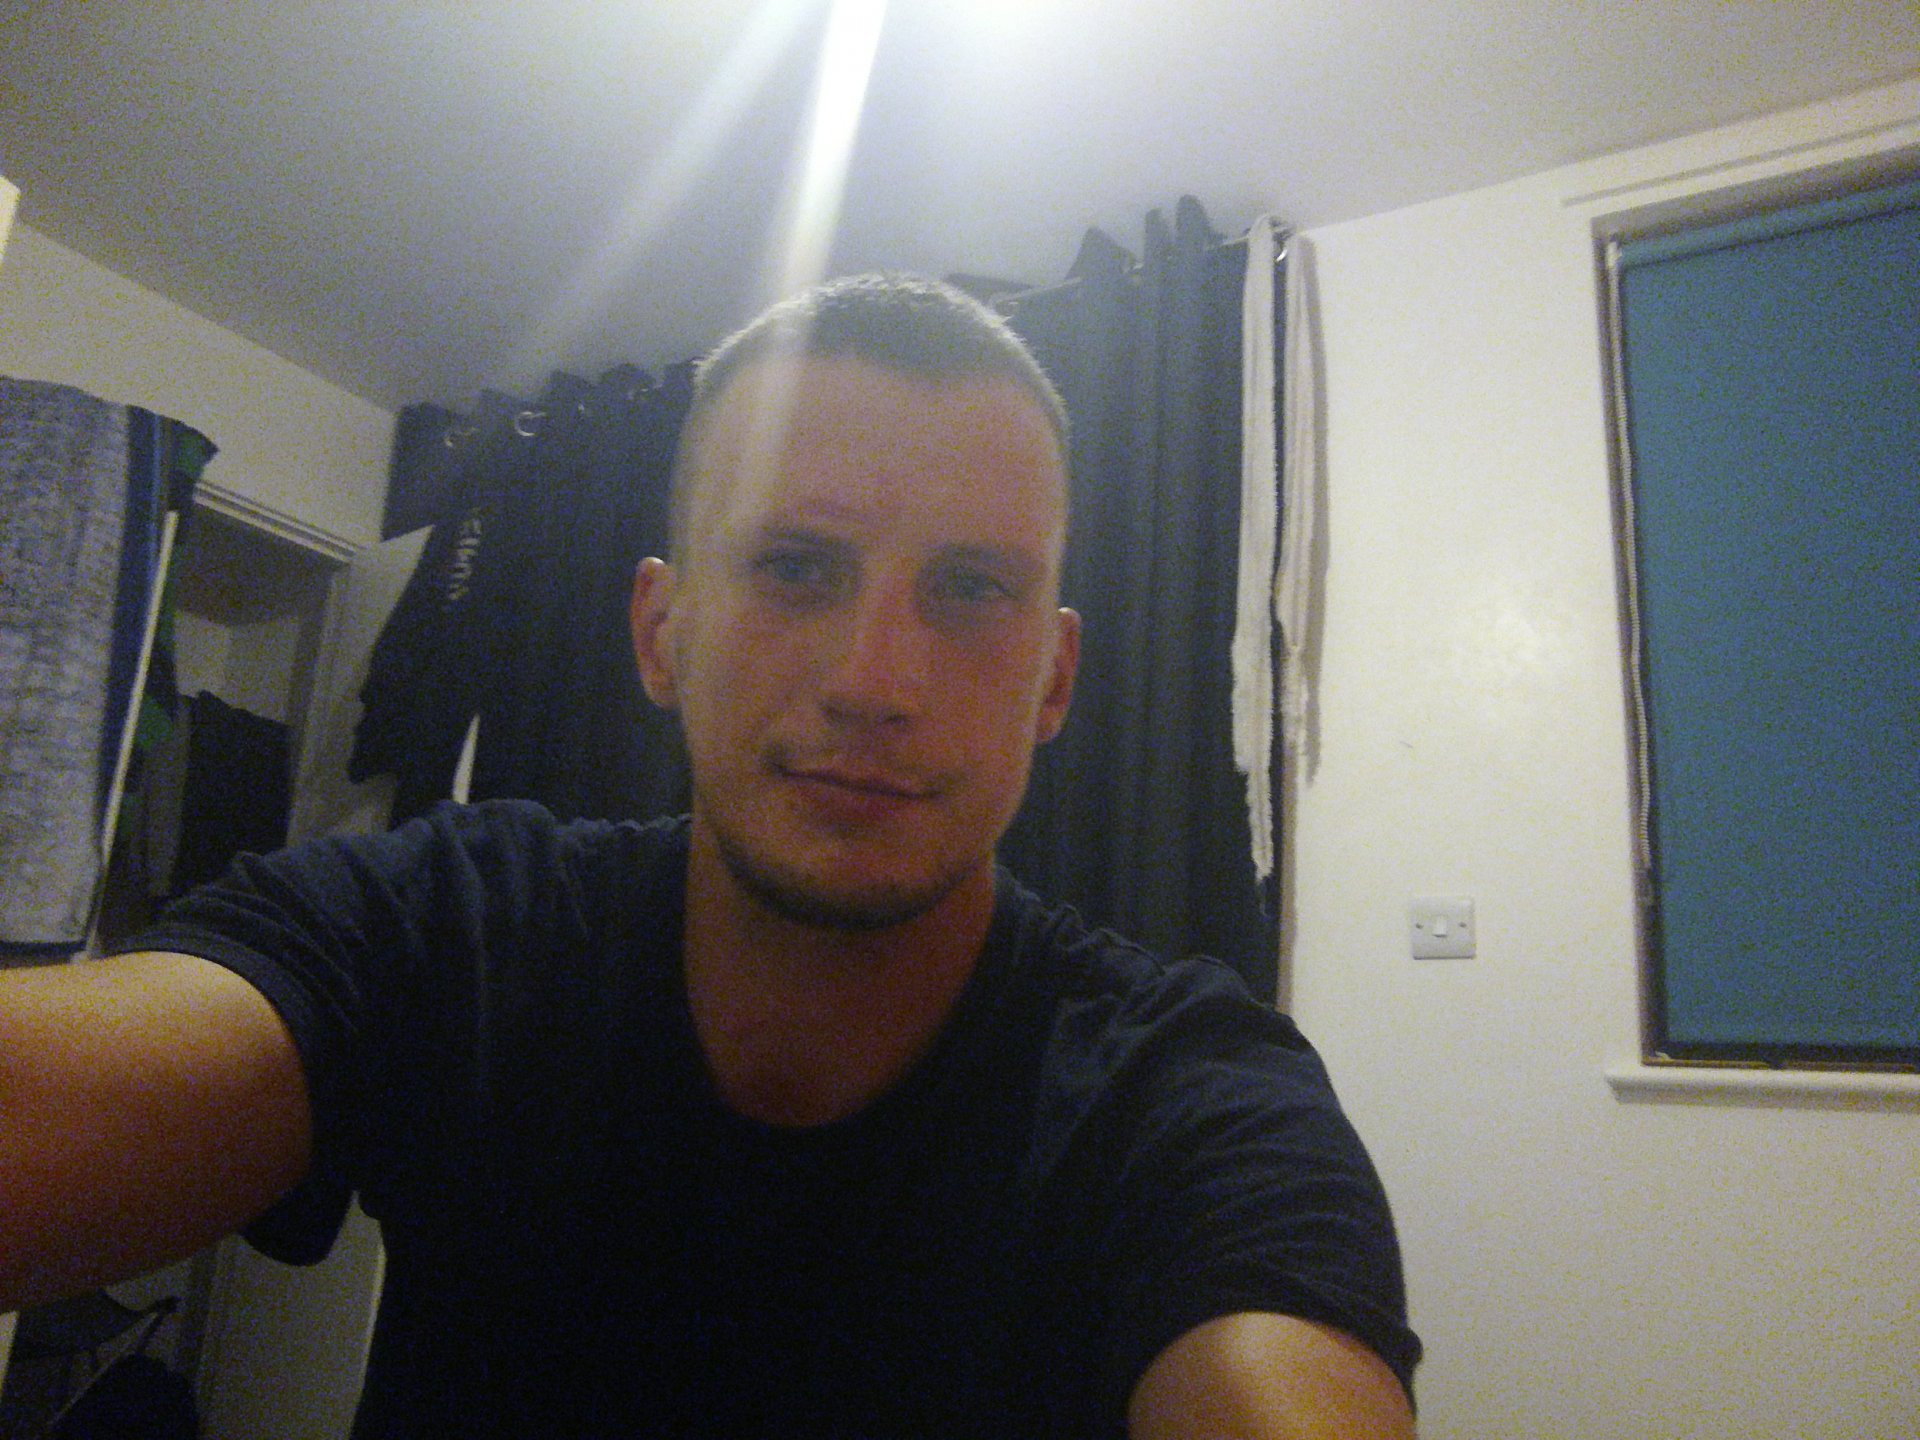 jacoob93hot from Greater London,United Kingdom